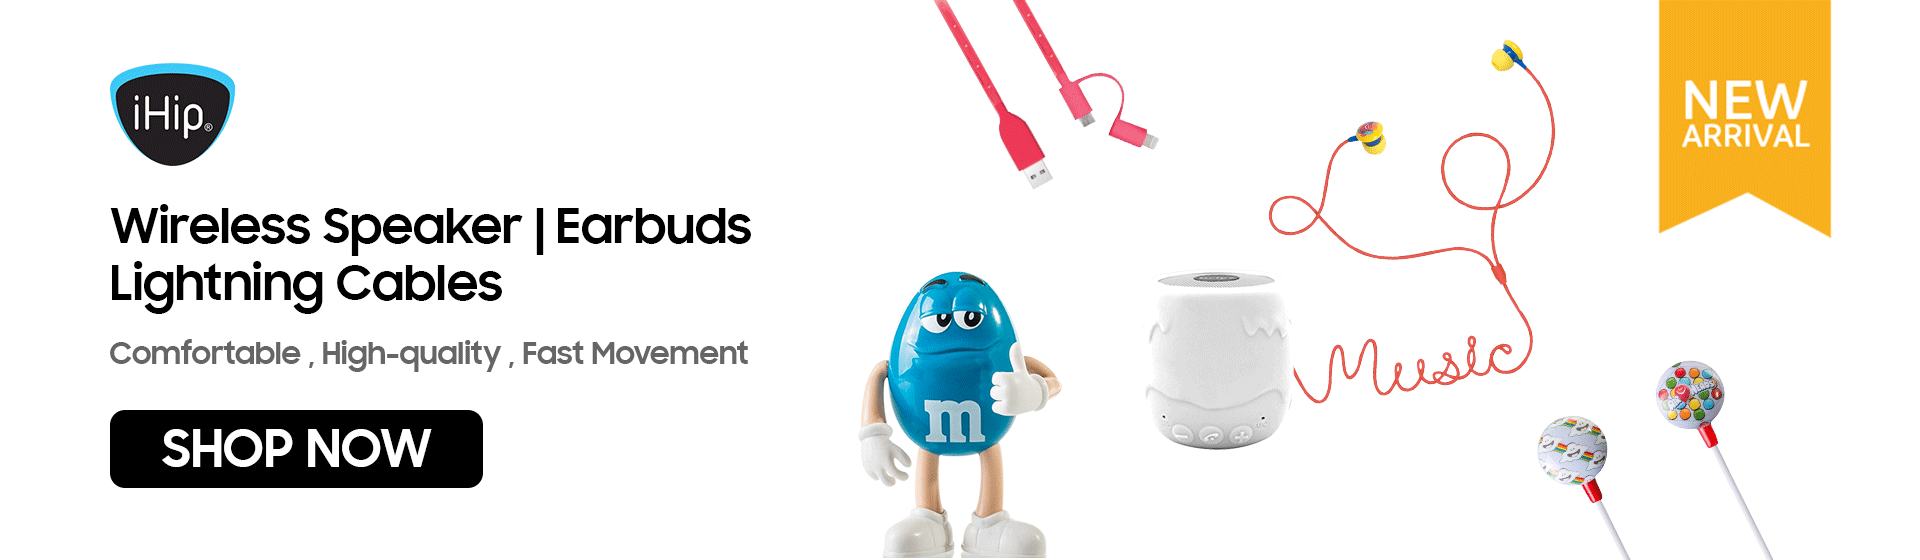 iHip Products | Wireless Speaker | Earbuds | Lightning Cables